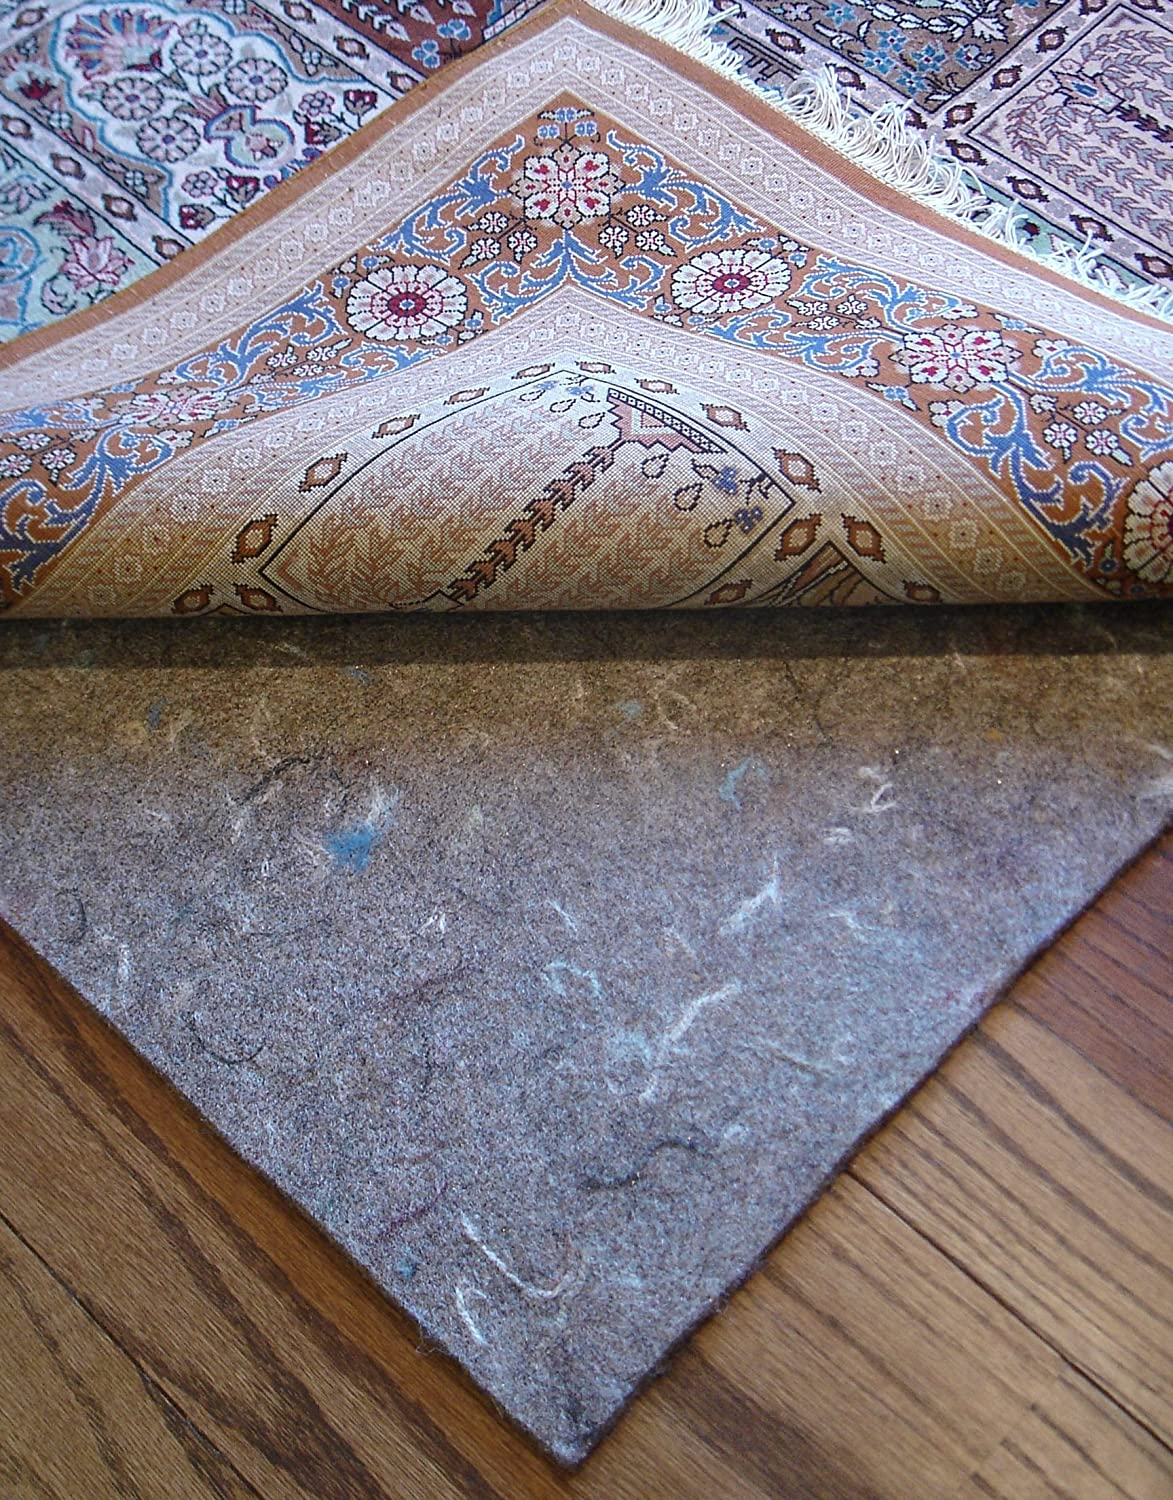 12'x16' Rug Pads for Less Super Premium (TM) Dense 100% Felt Jute 1/3